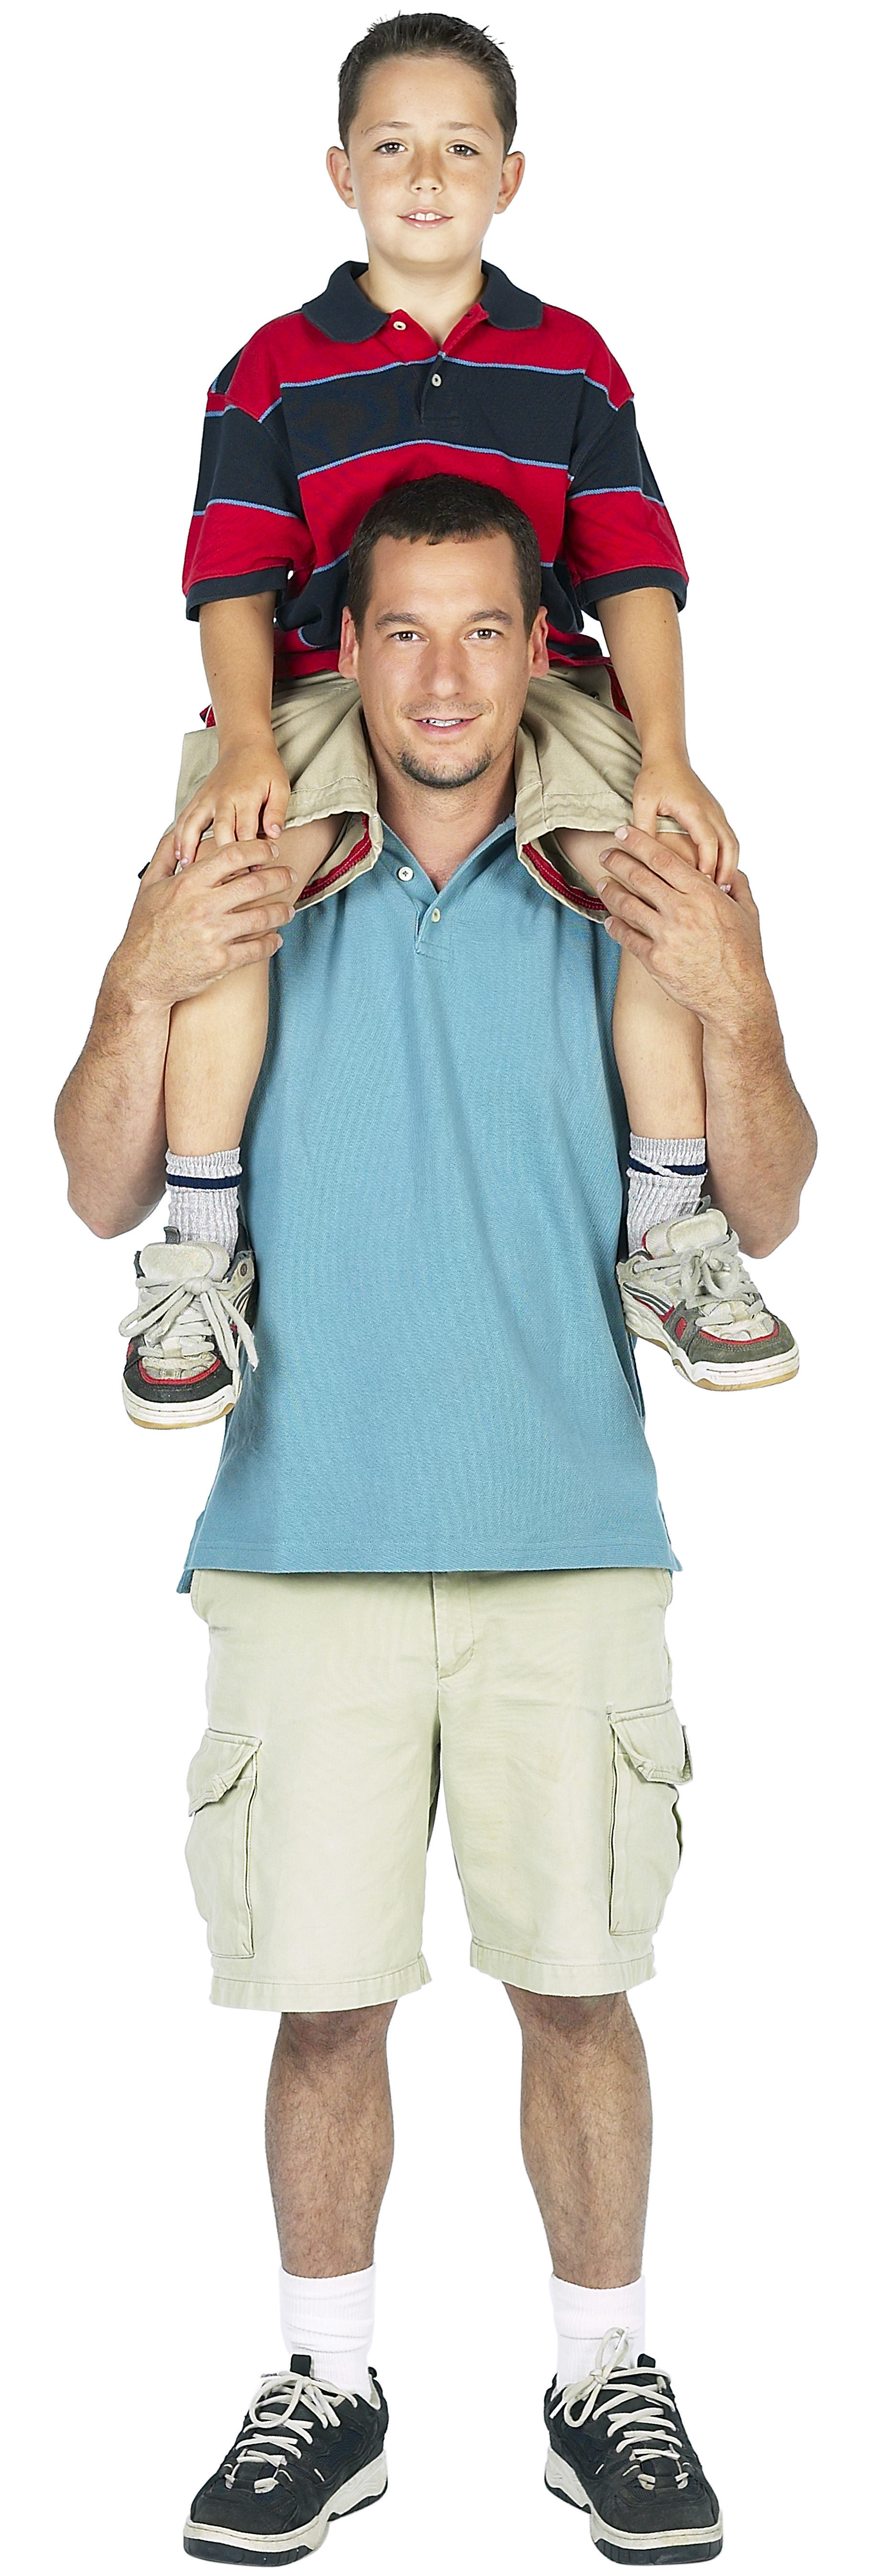 What Can I Do if the Noncustodial Parent Claims a Child on